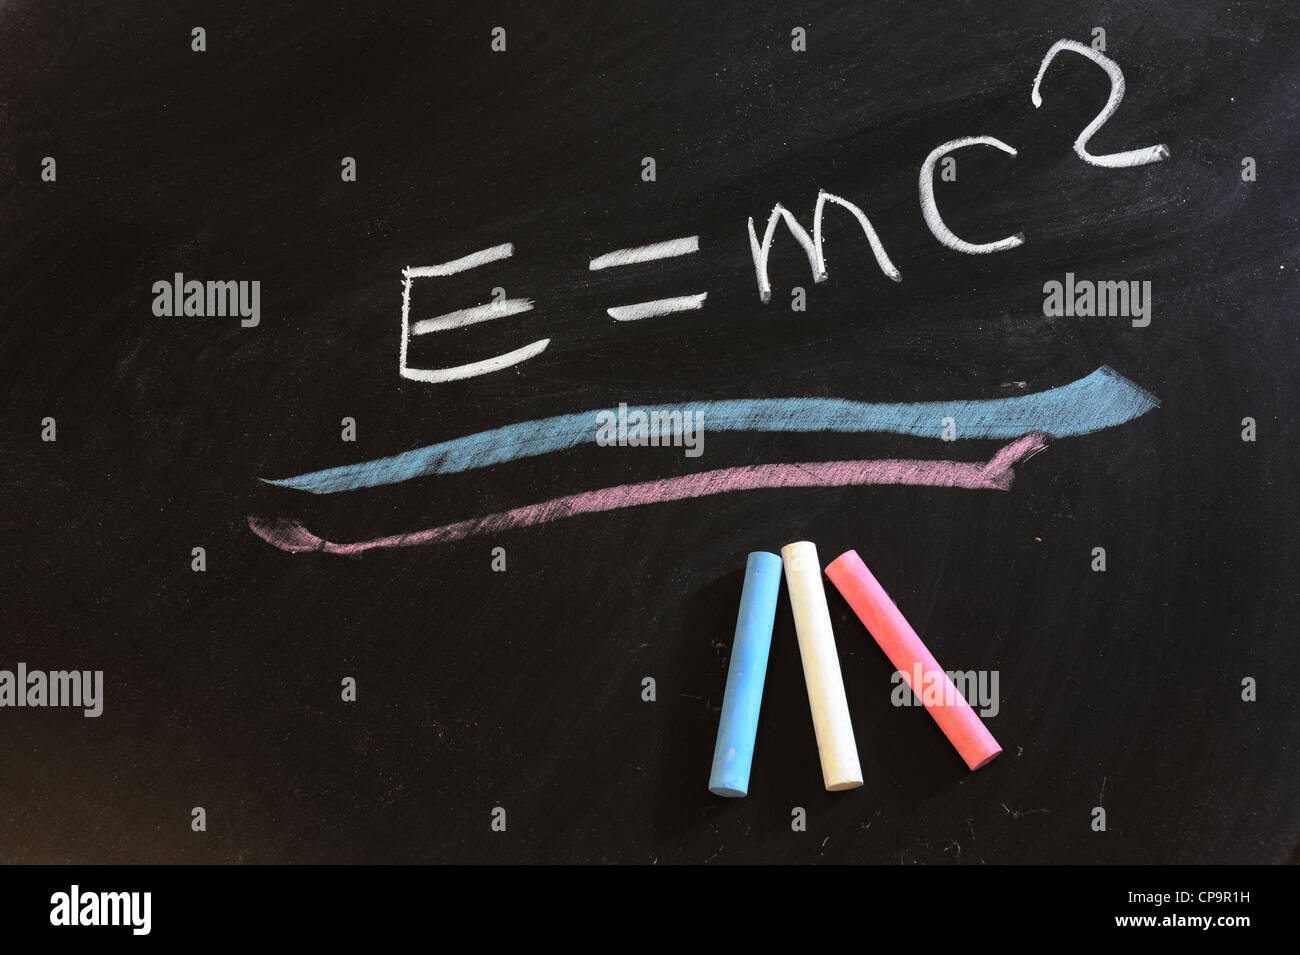 'Theory of relativity' formula written on chalkboard - Stock Image